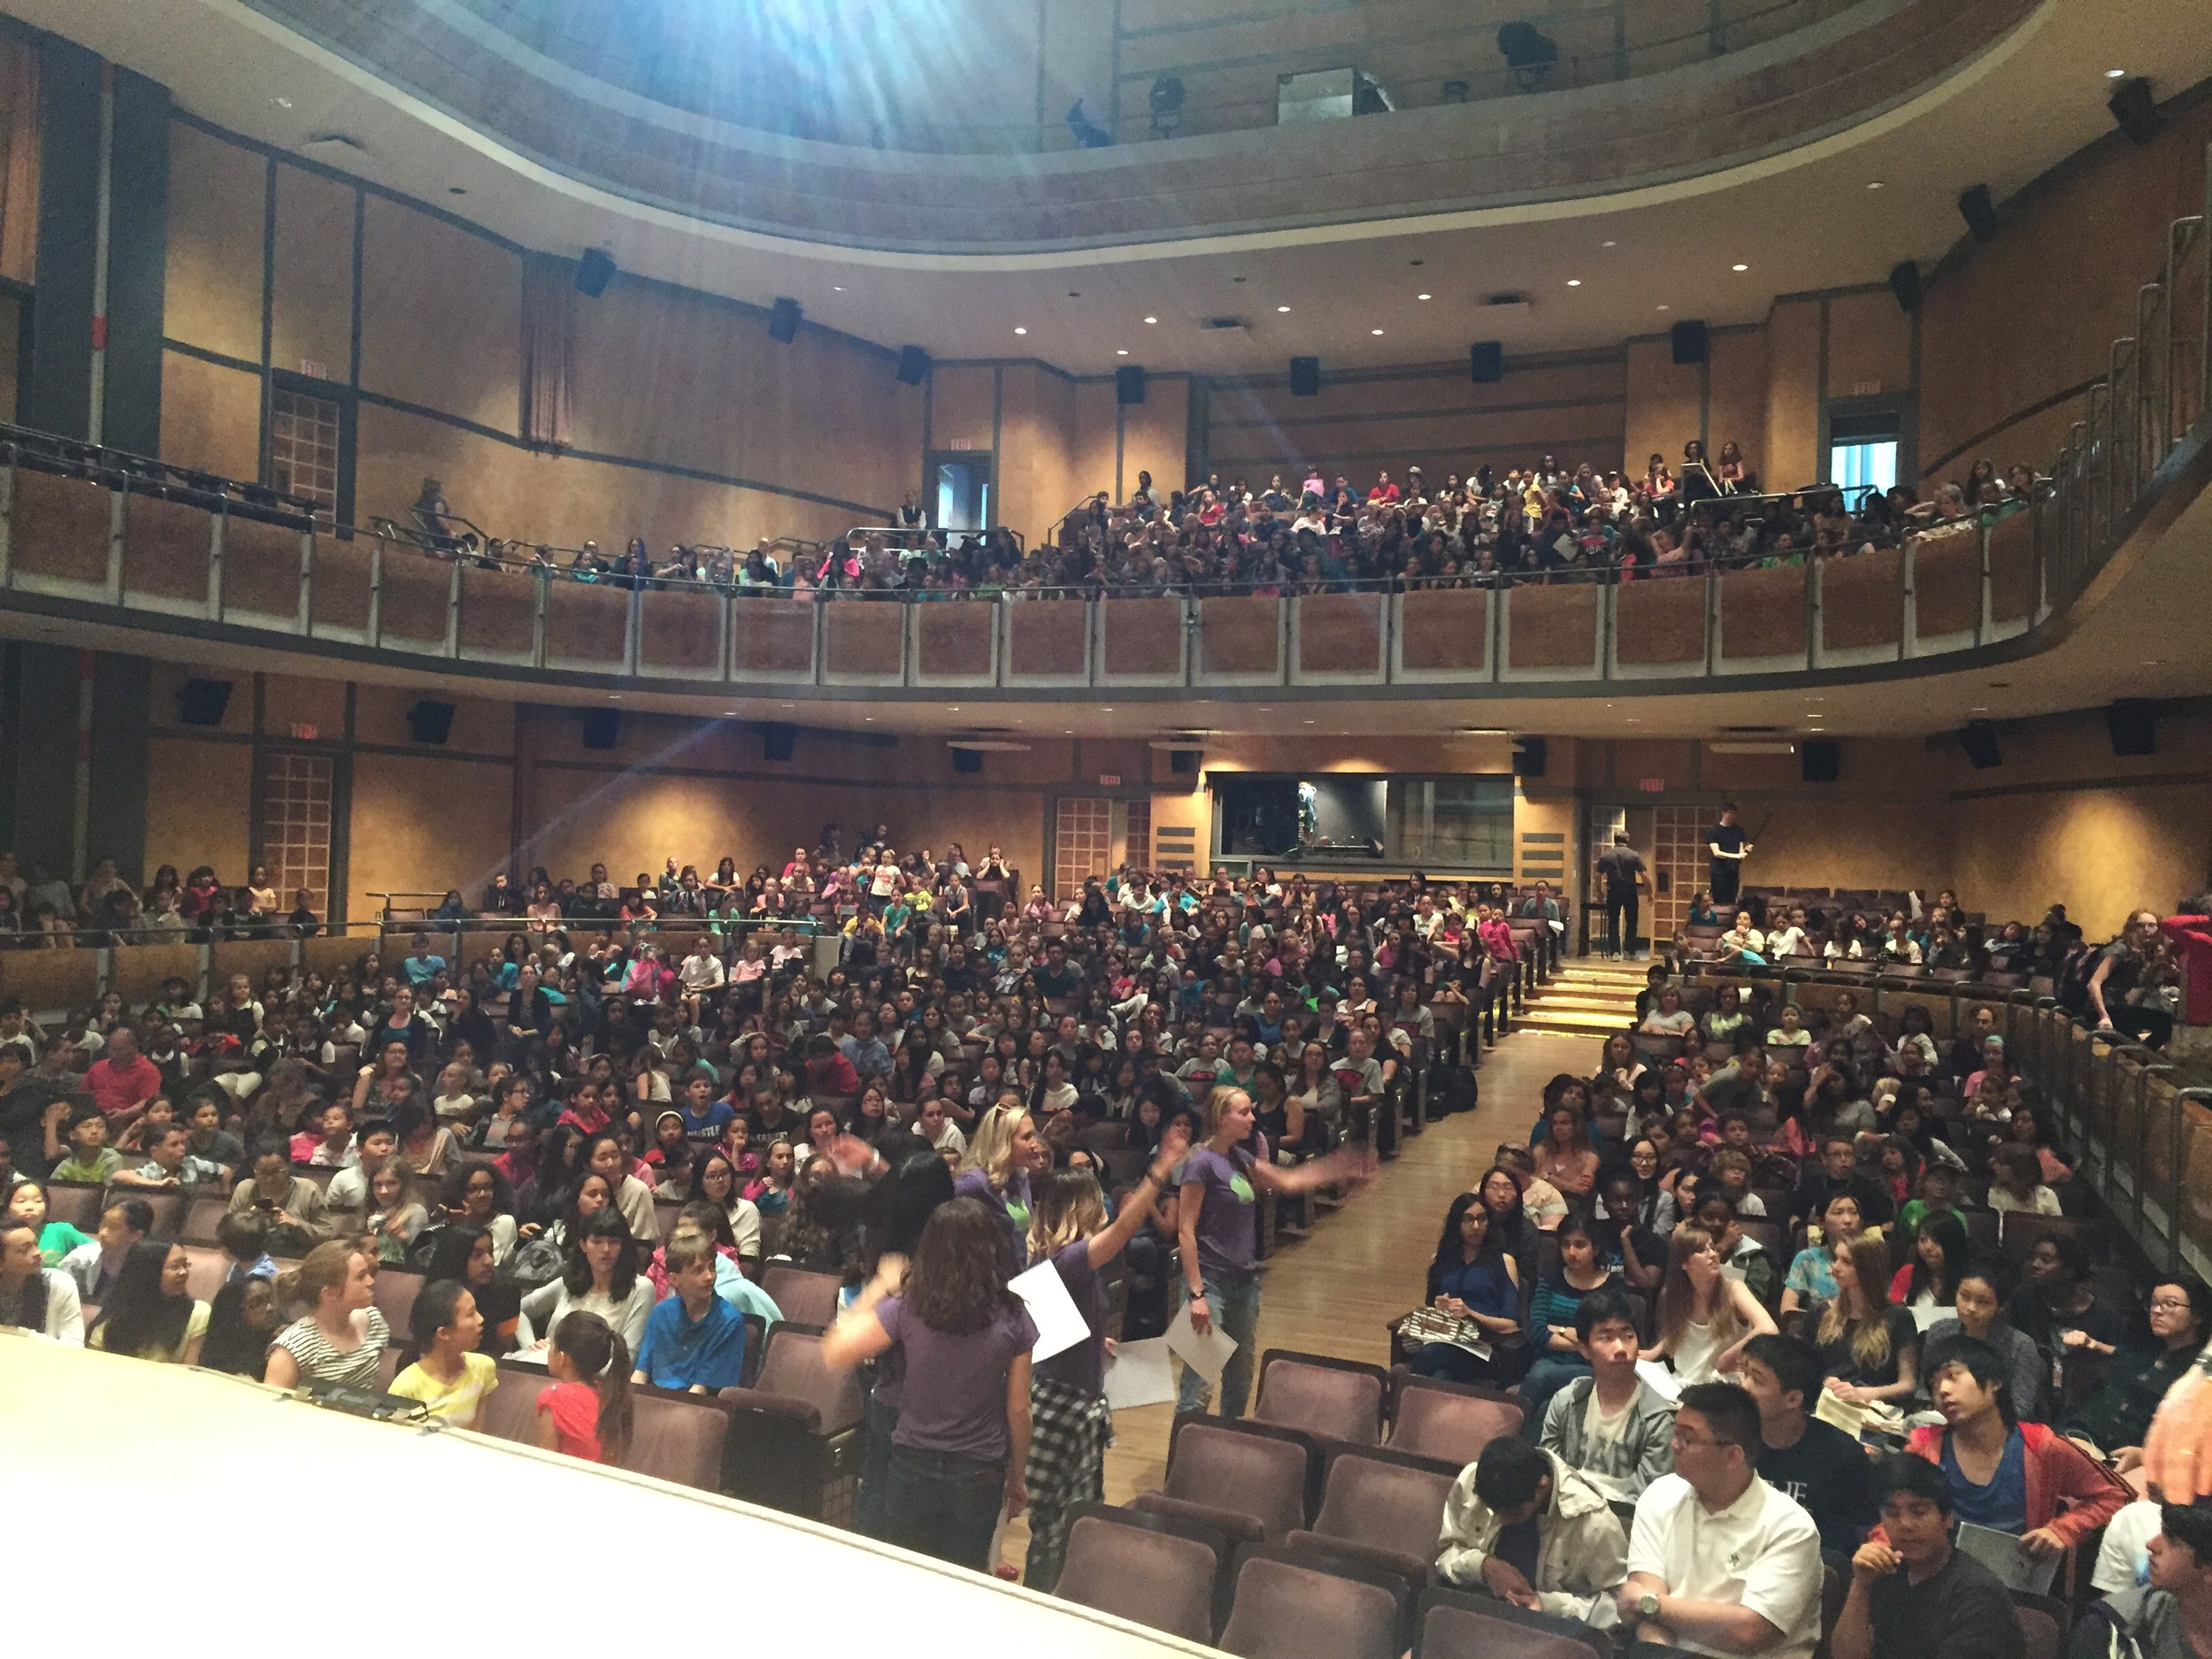 That's not the audience...that's 800 children waiting to get on stage!!! Total insanity!!!